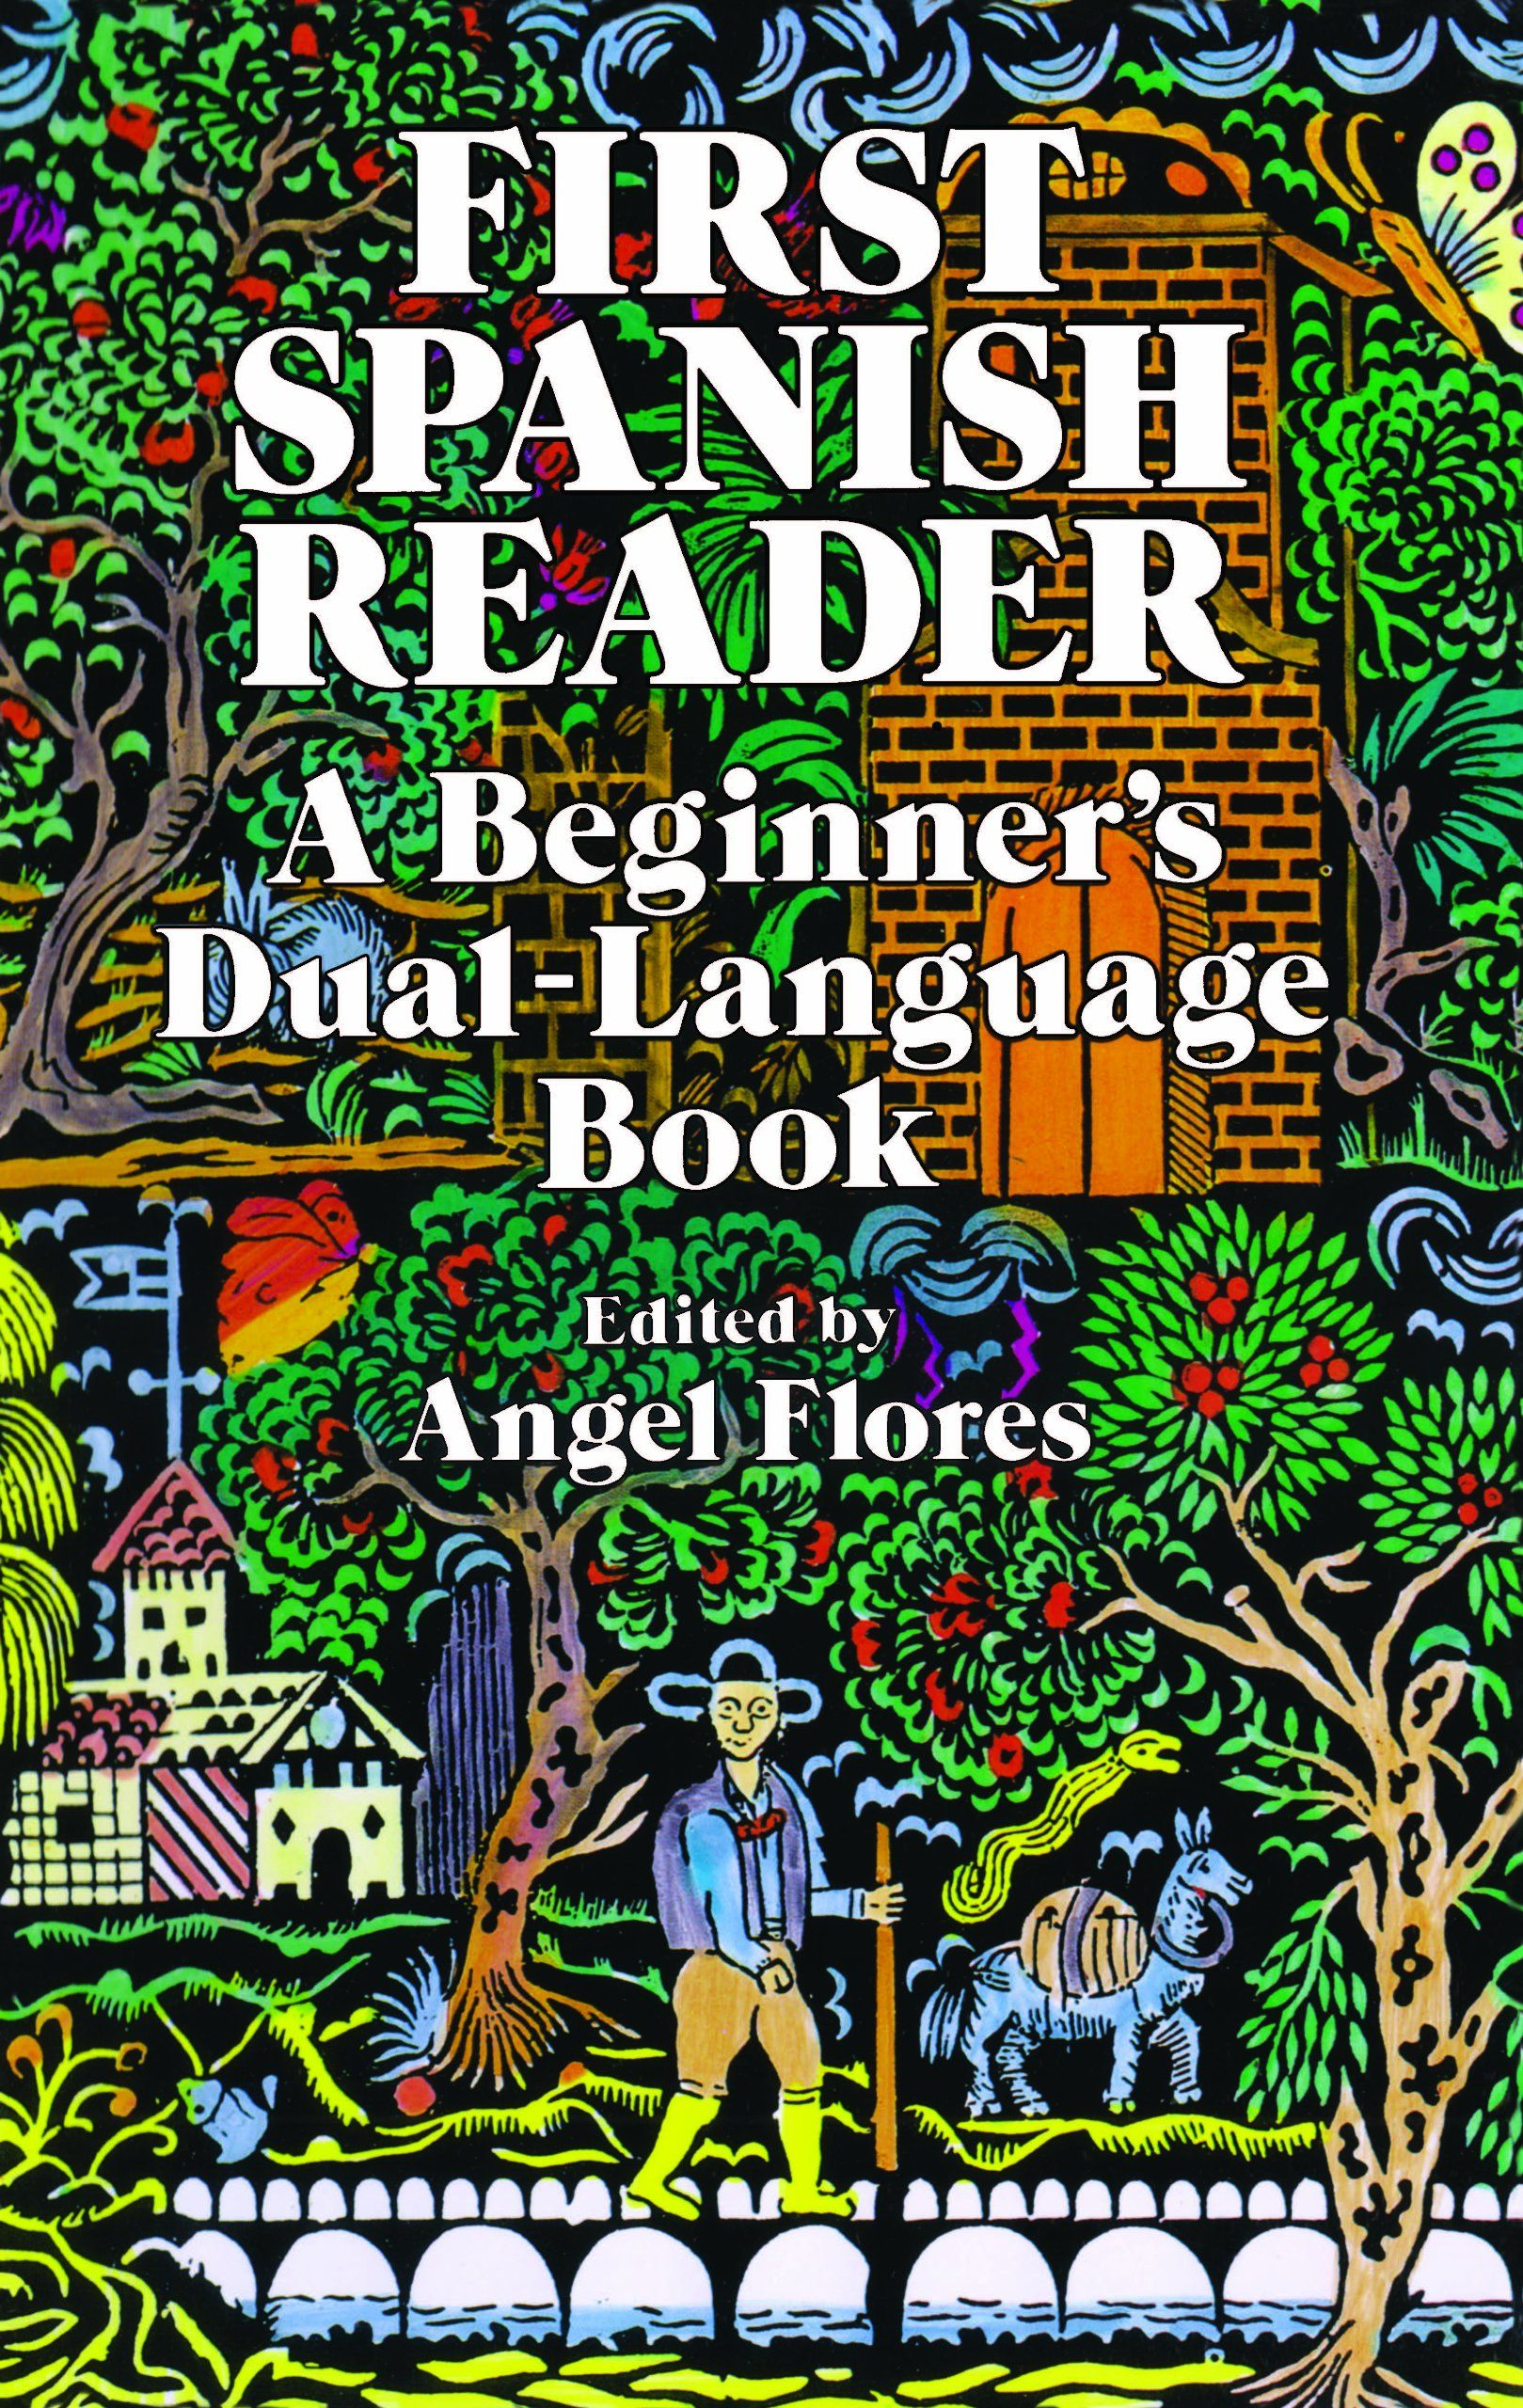 First Spanish Reader: A Beginner's Dual-Language Book (Dover Dual